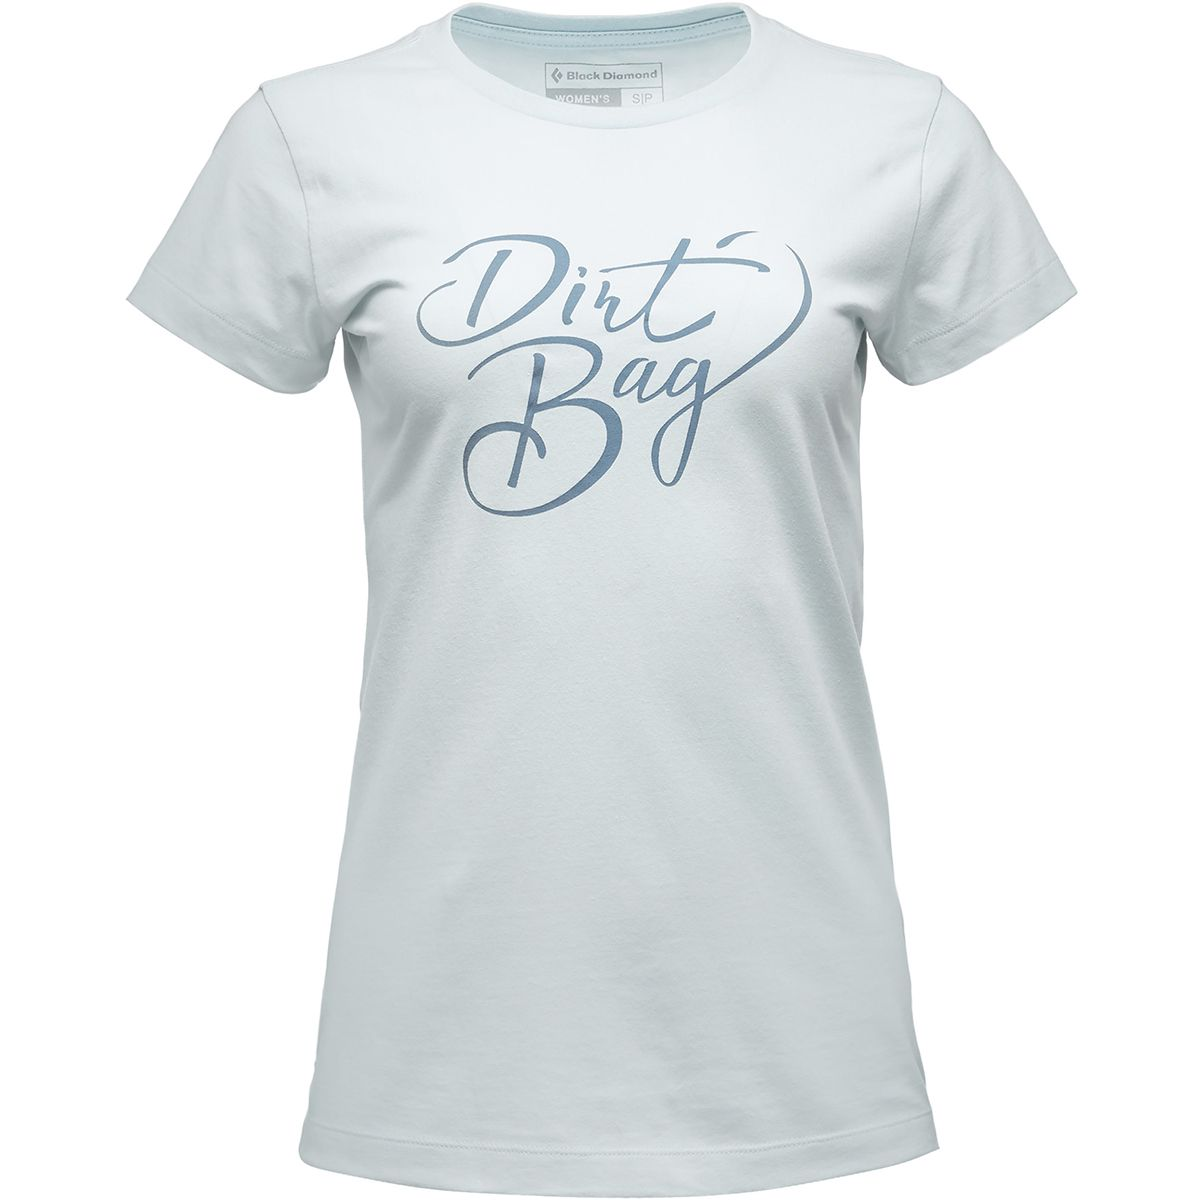 Black Diamond Damen Dirt Bag T-Shirt (Größe S, Blau) | T-Shirts Freizeit > Damen